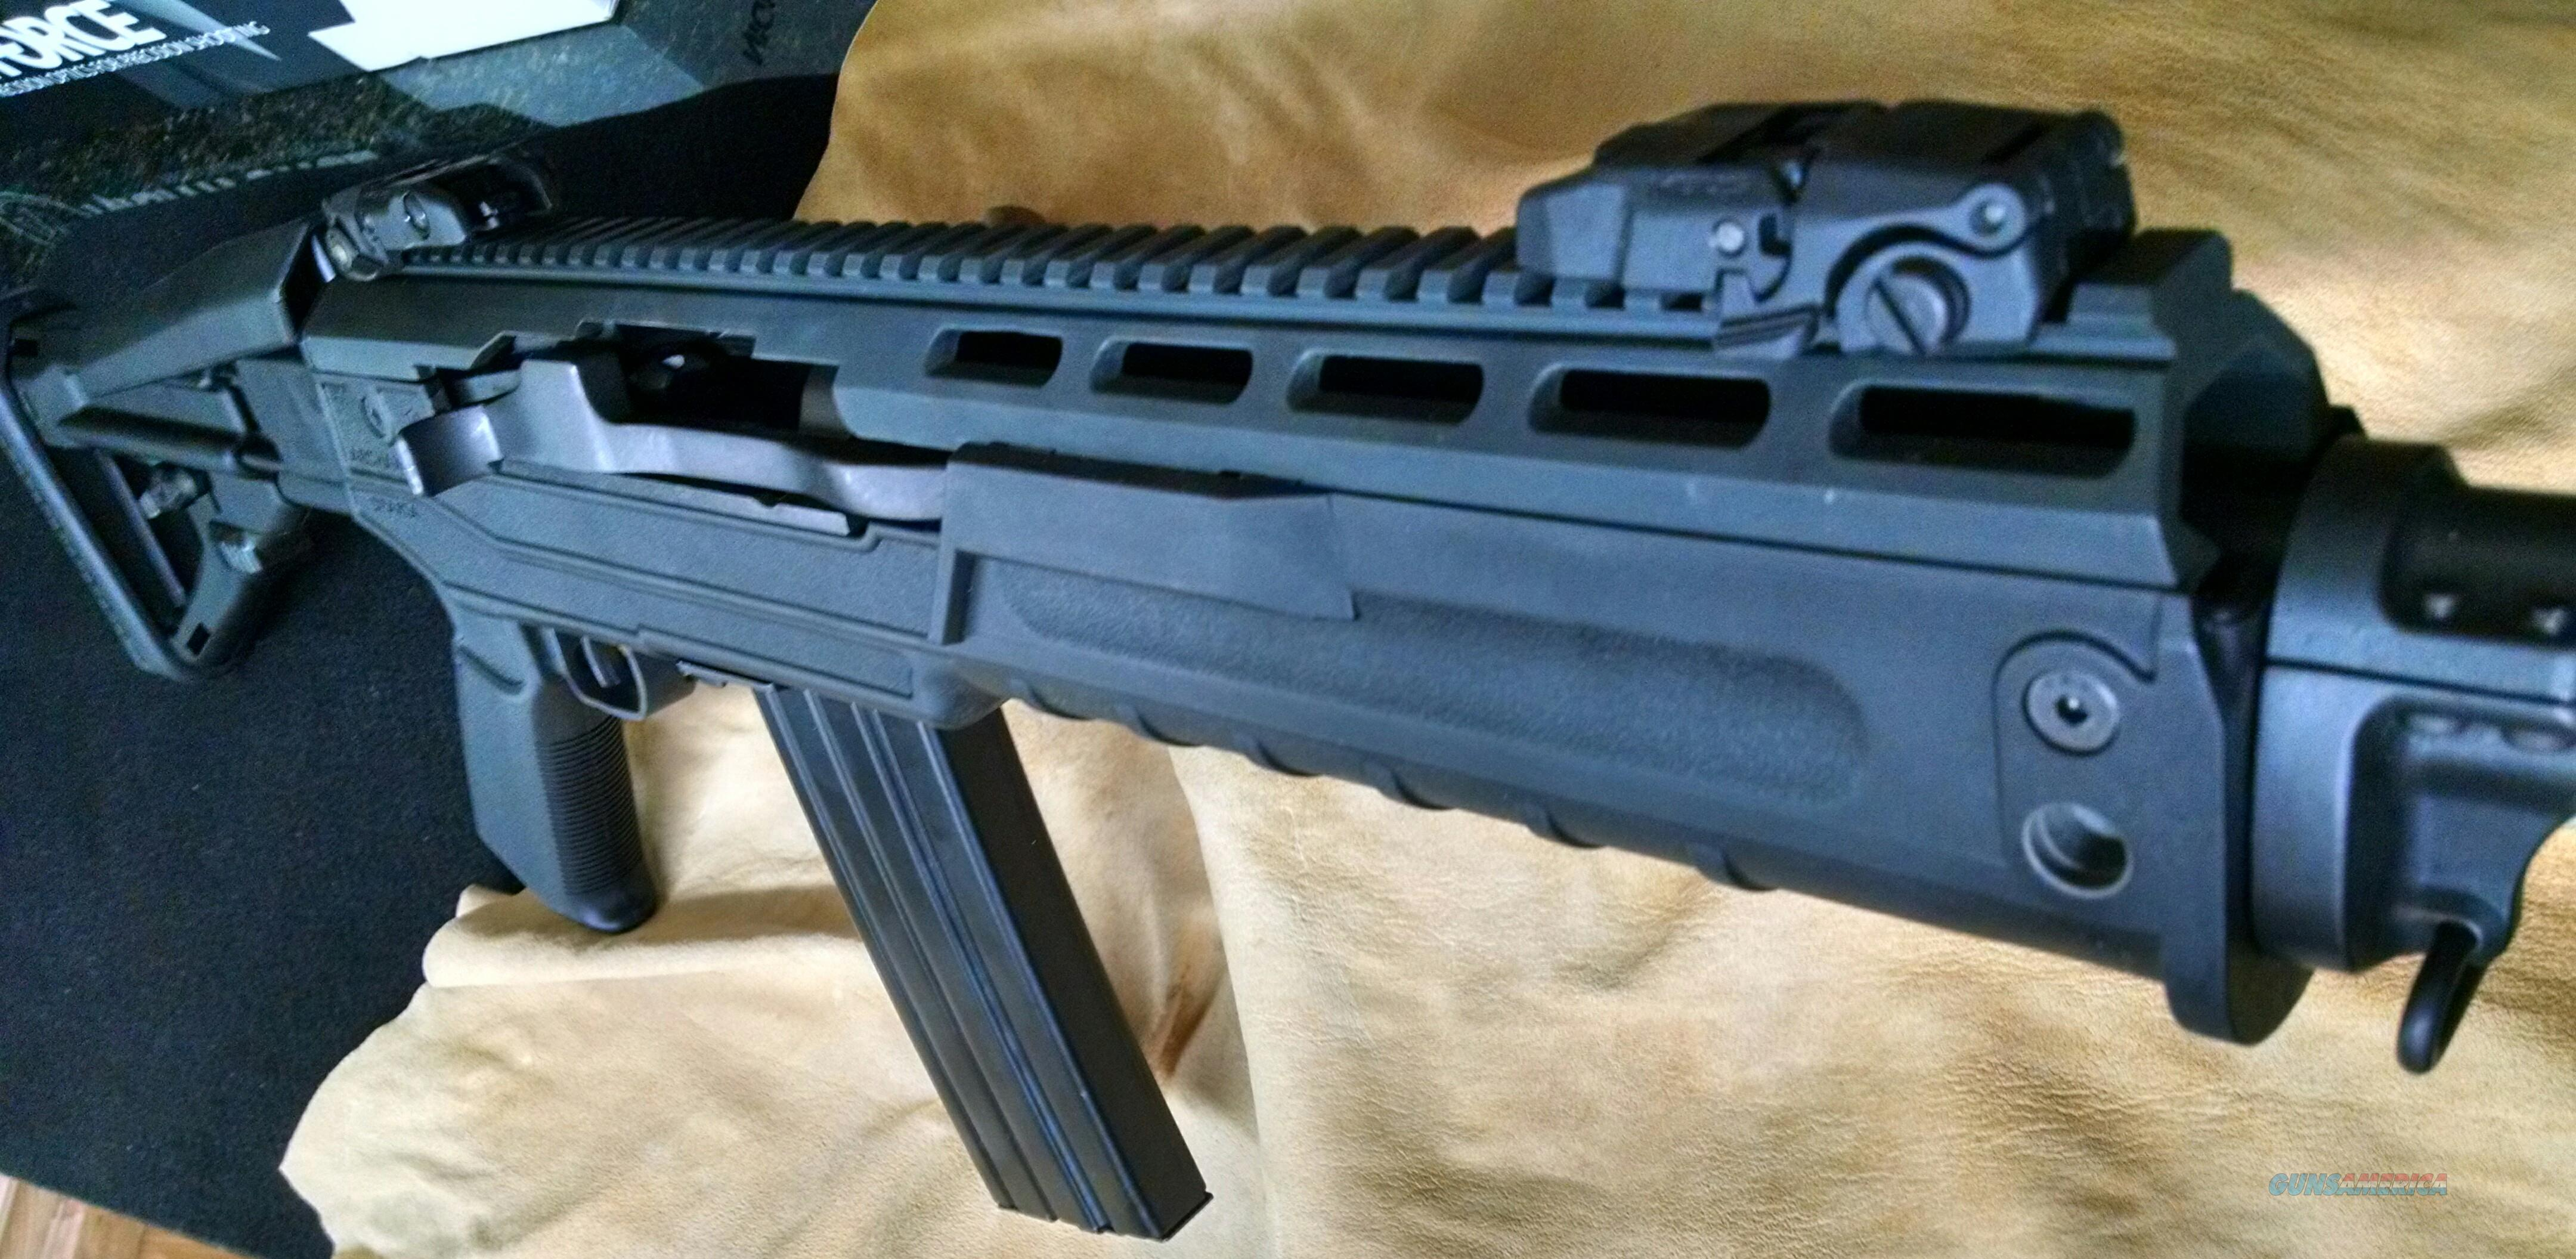 Ruger Mini 14 Ranch Rifle w/Archangel Sparta Stock